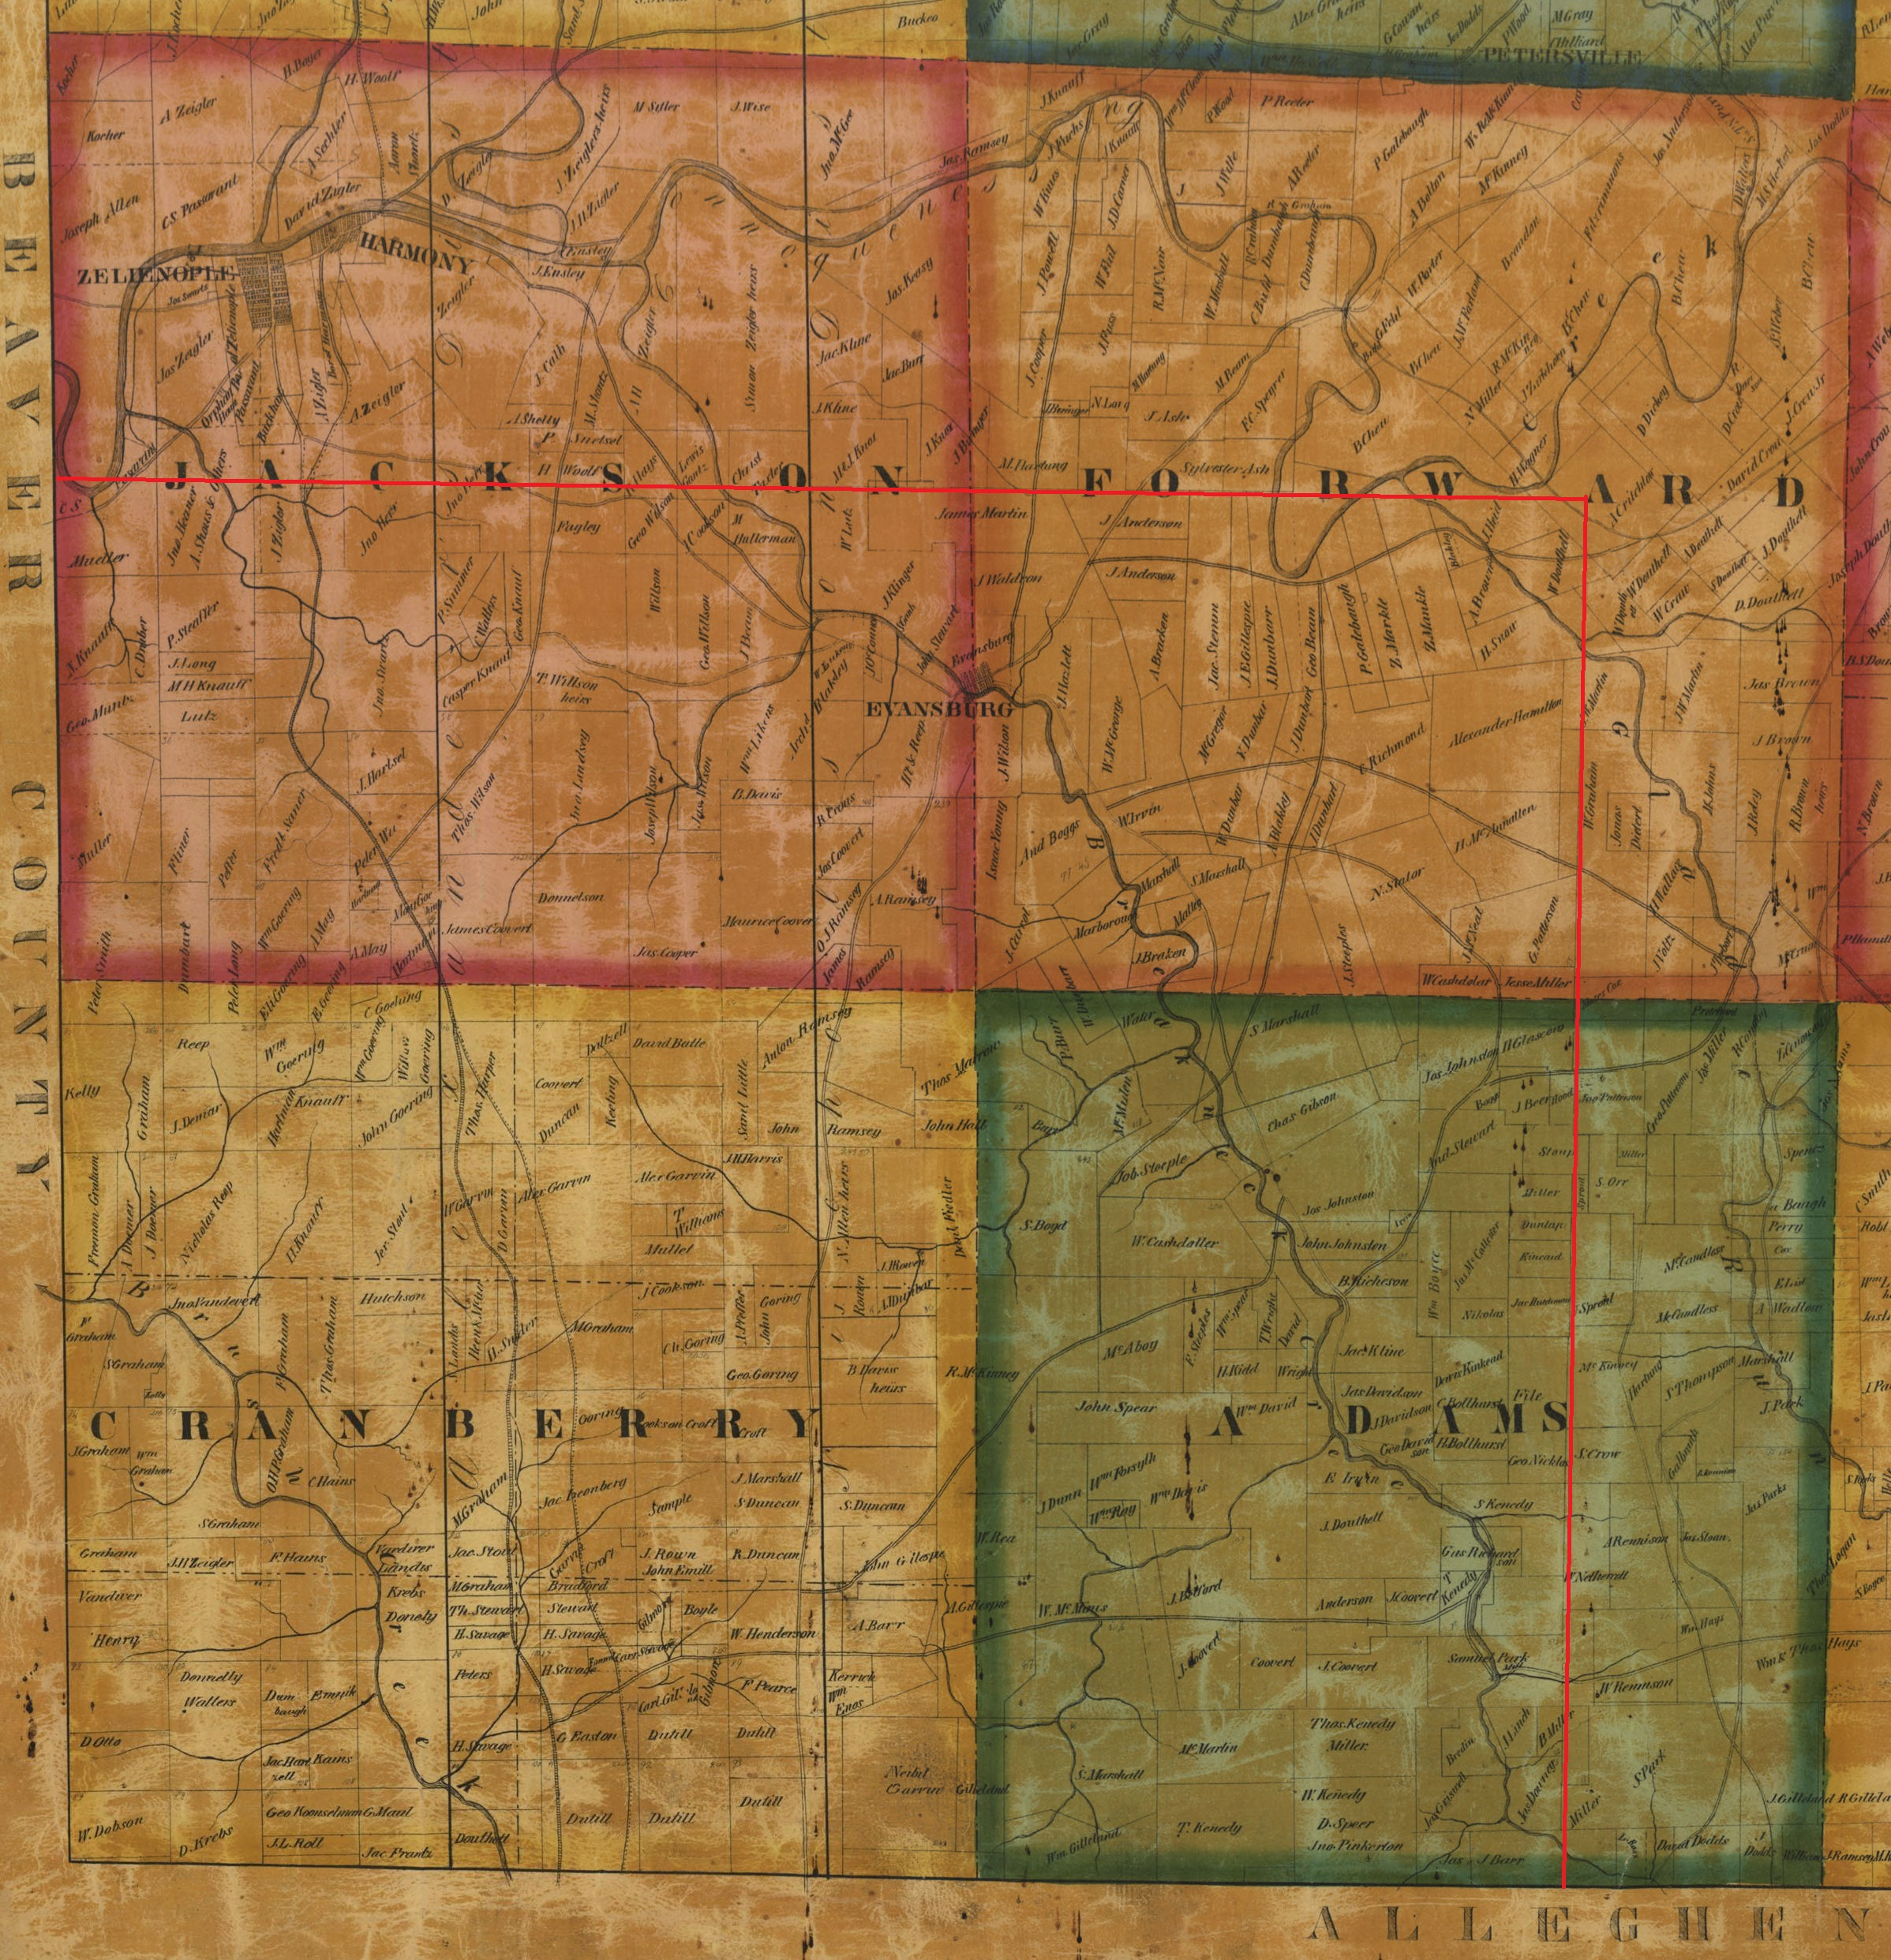 Cranberry Township Composite Map of 1858